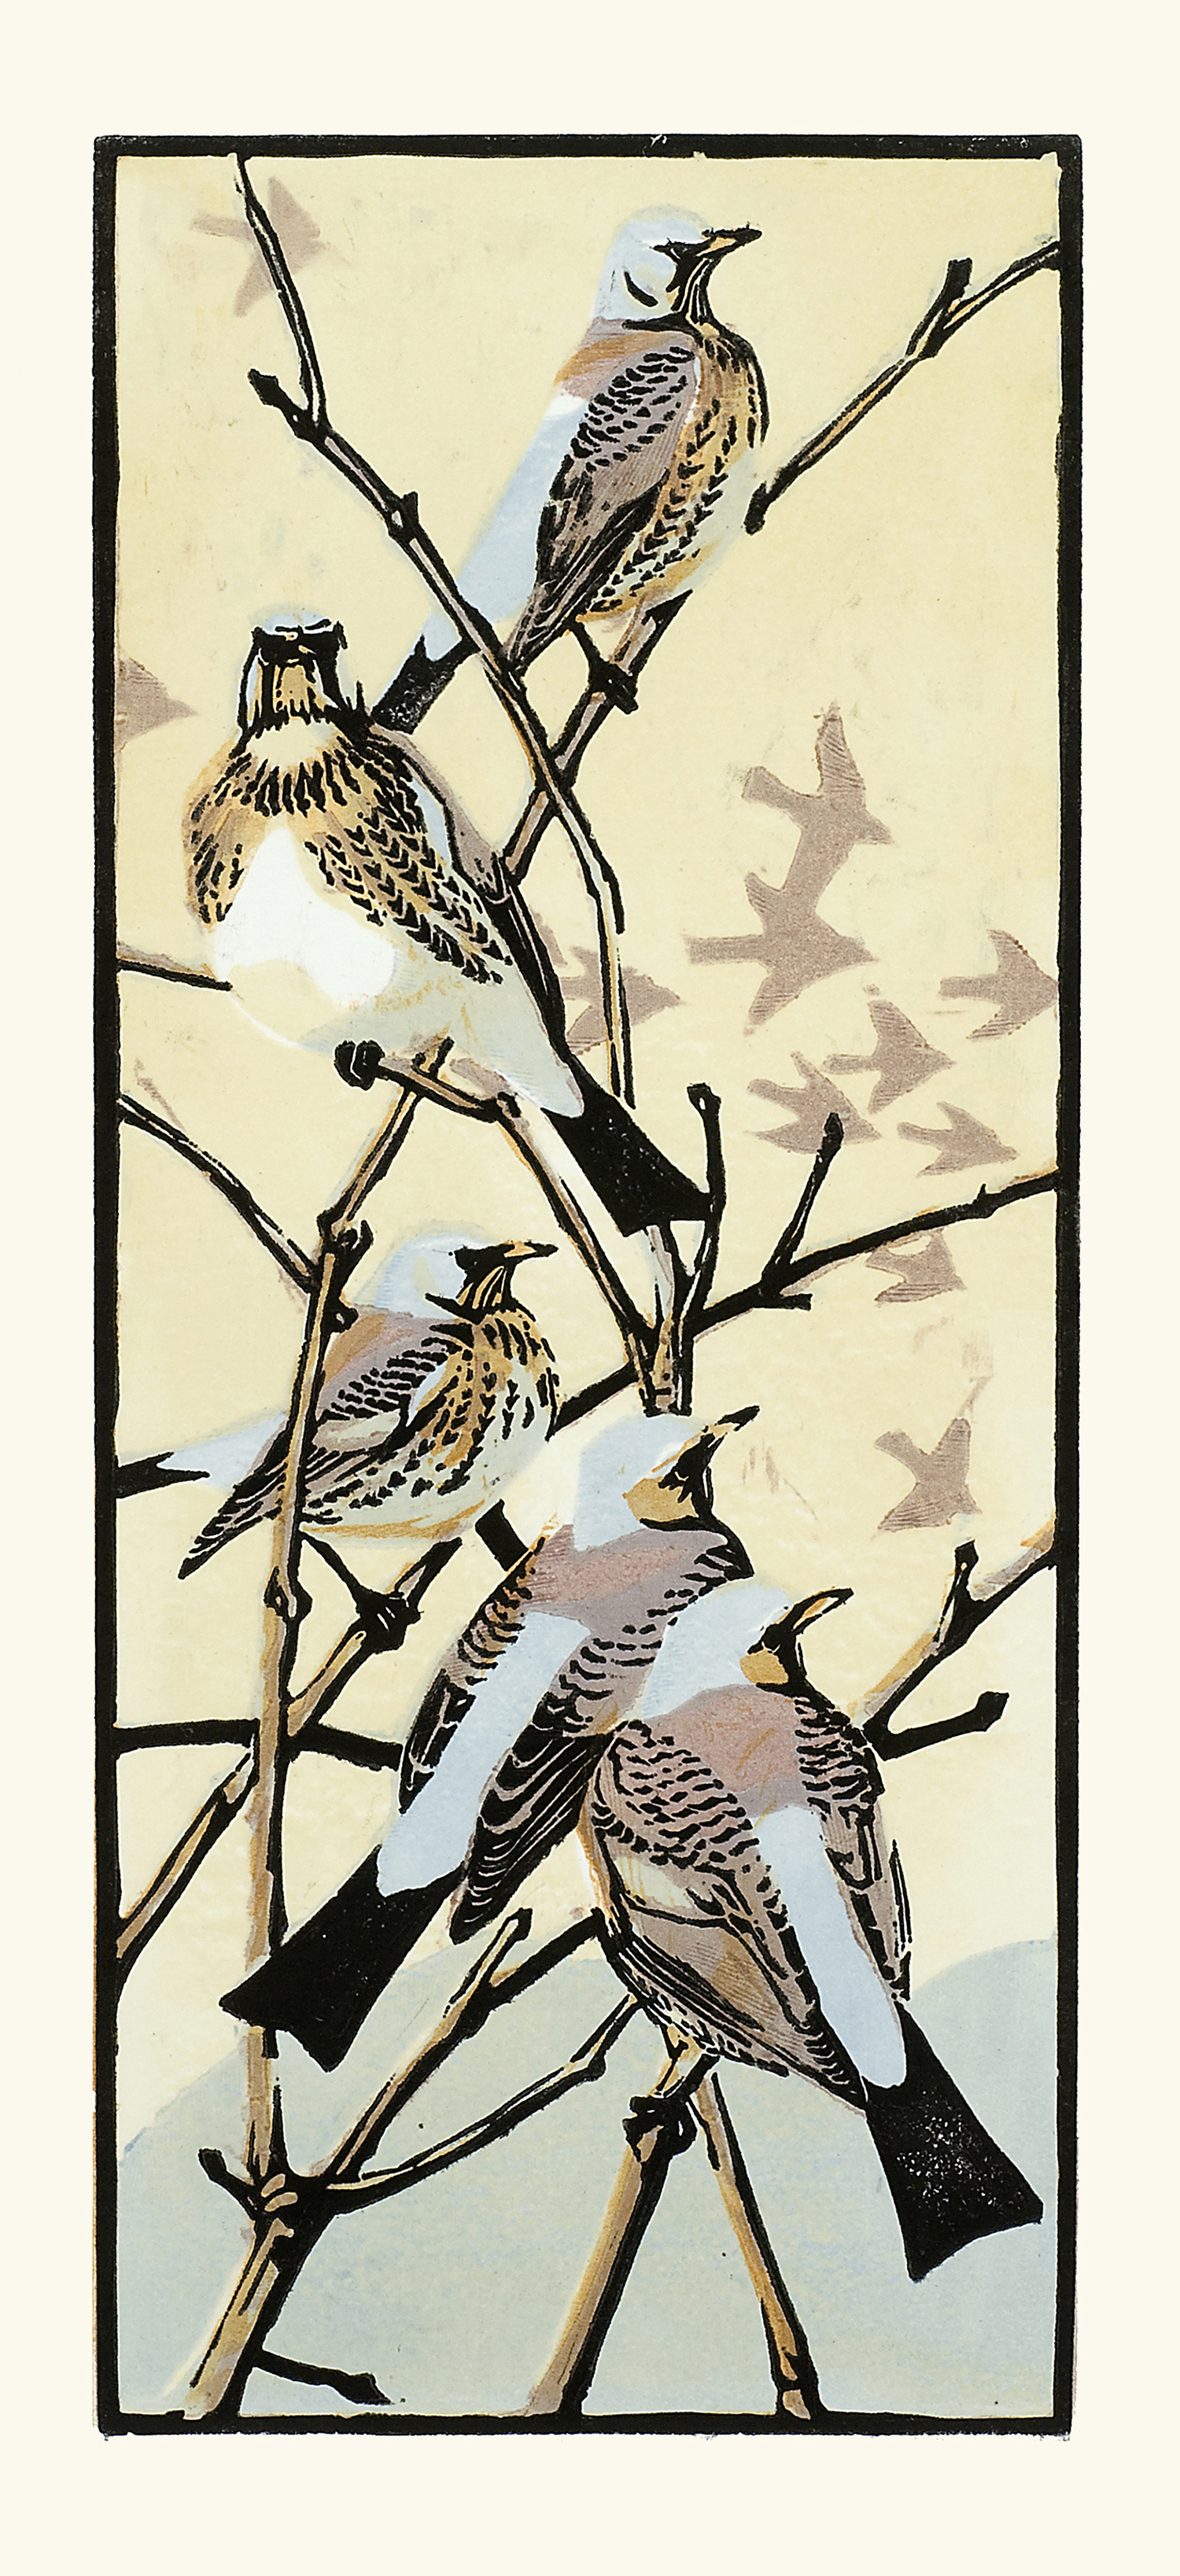 Winter Thrushes by Robert Greenhalf